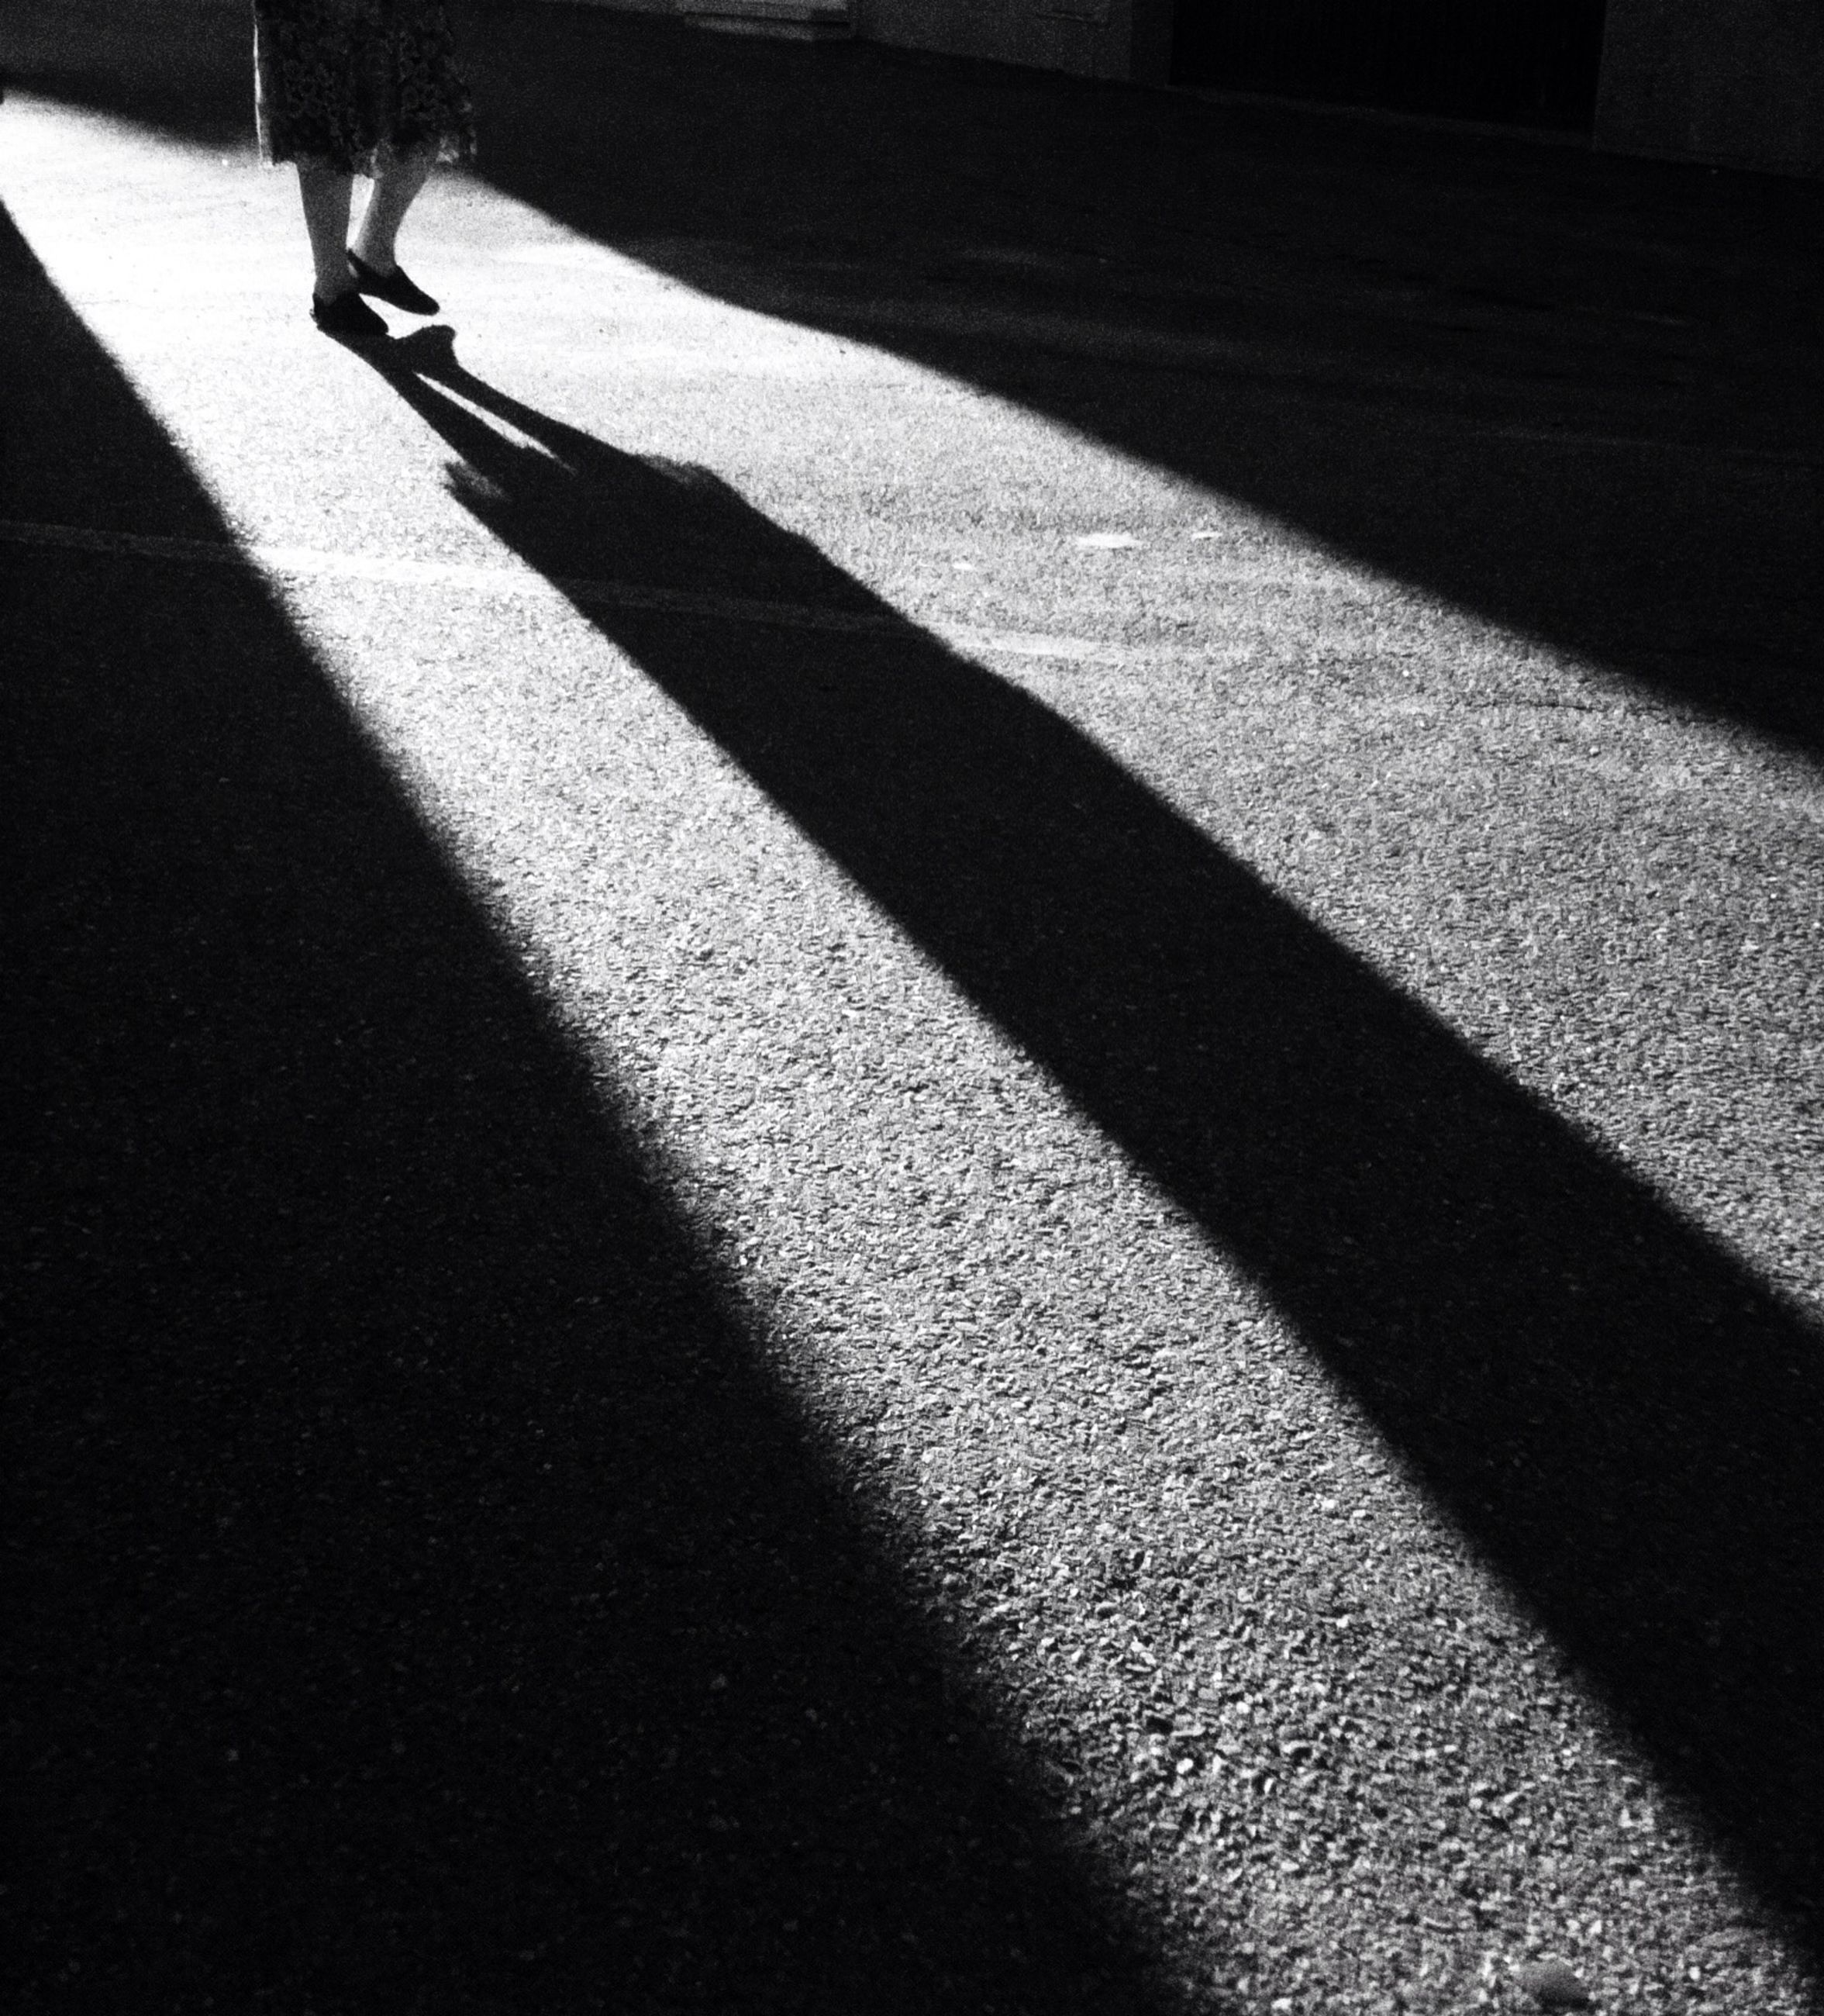 shadow, sunlight, street, high angle view, focus on shadow, road, road marking, walking, sidewalk, men, outdoors, day, zebra crossing, unrecognizable person, transportation, footpath, tiled floor, sunny